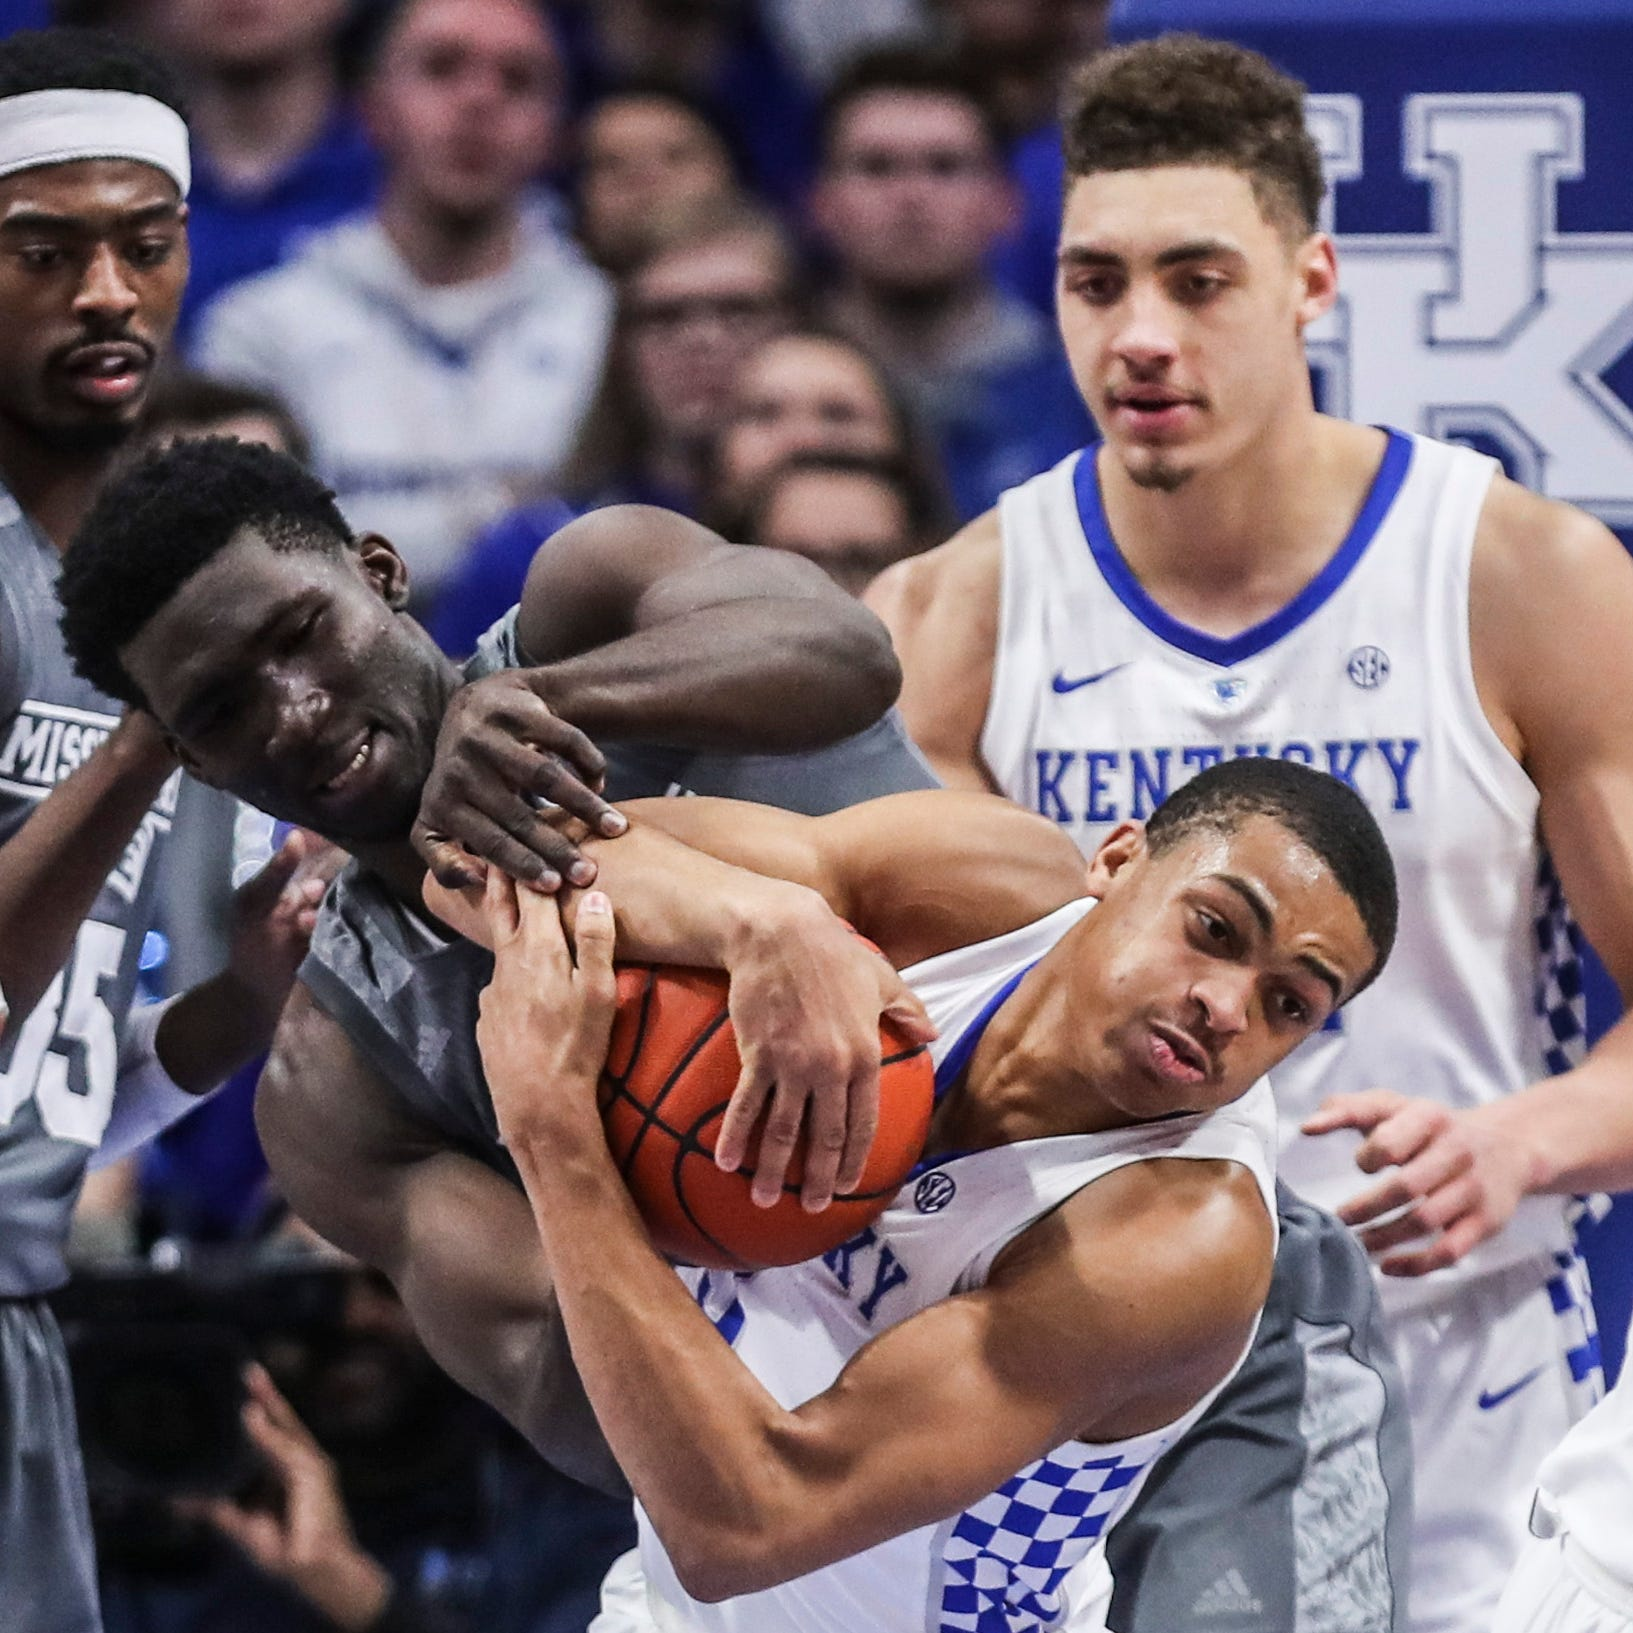 Mississippi State falls apart offensively in lopsided loss to Kentucky